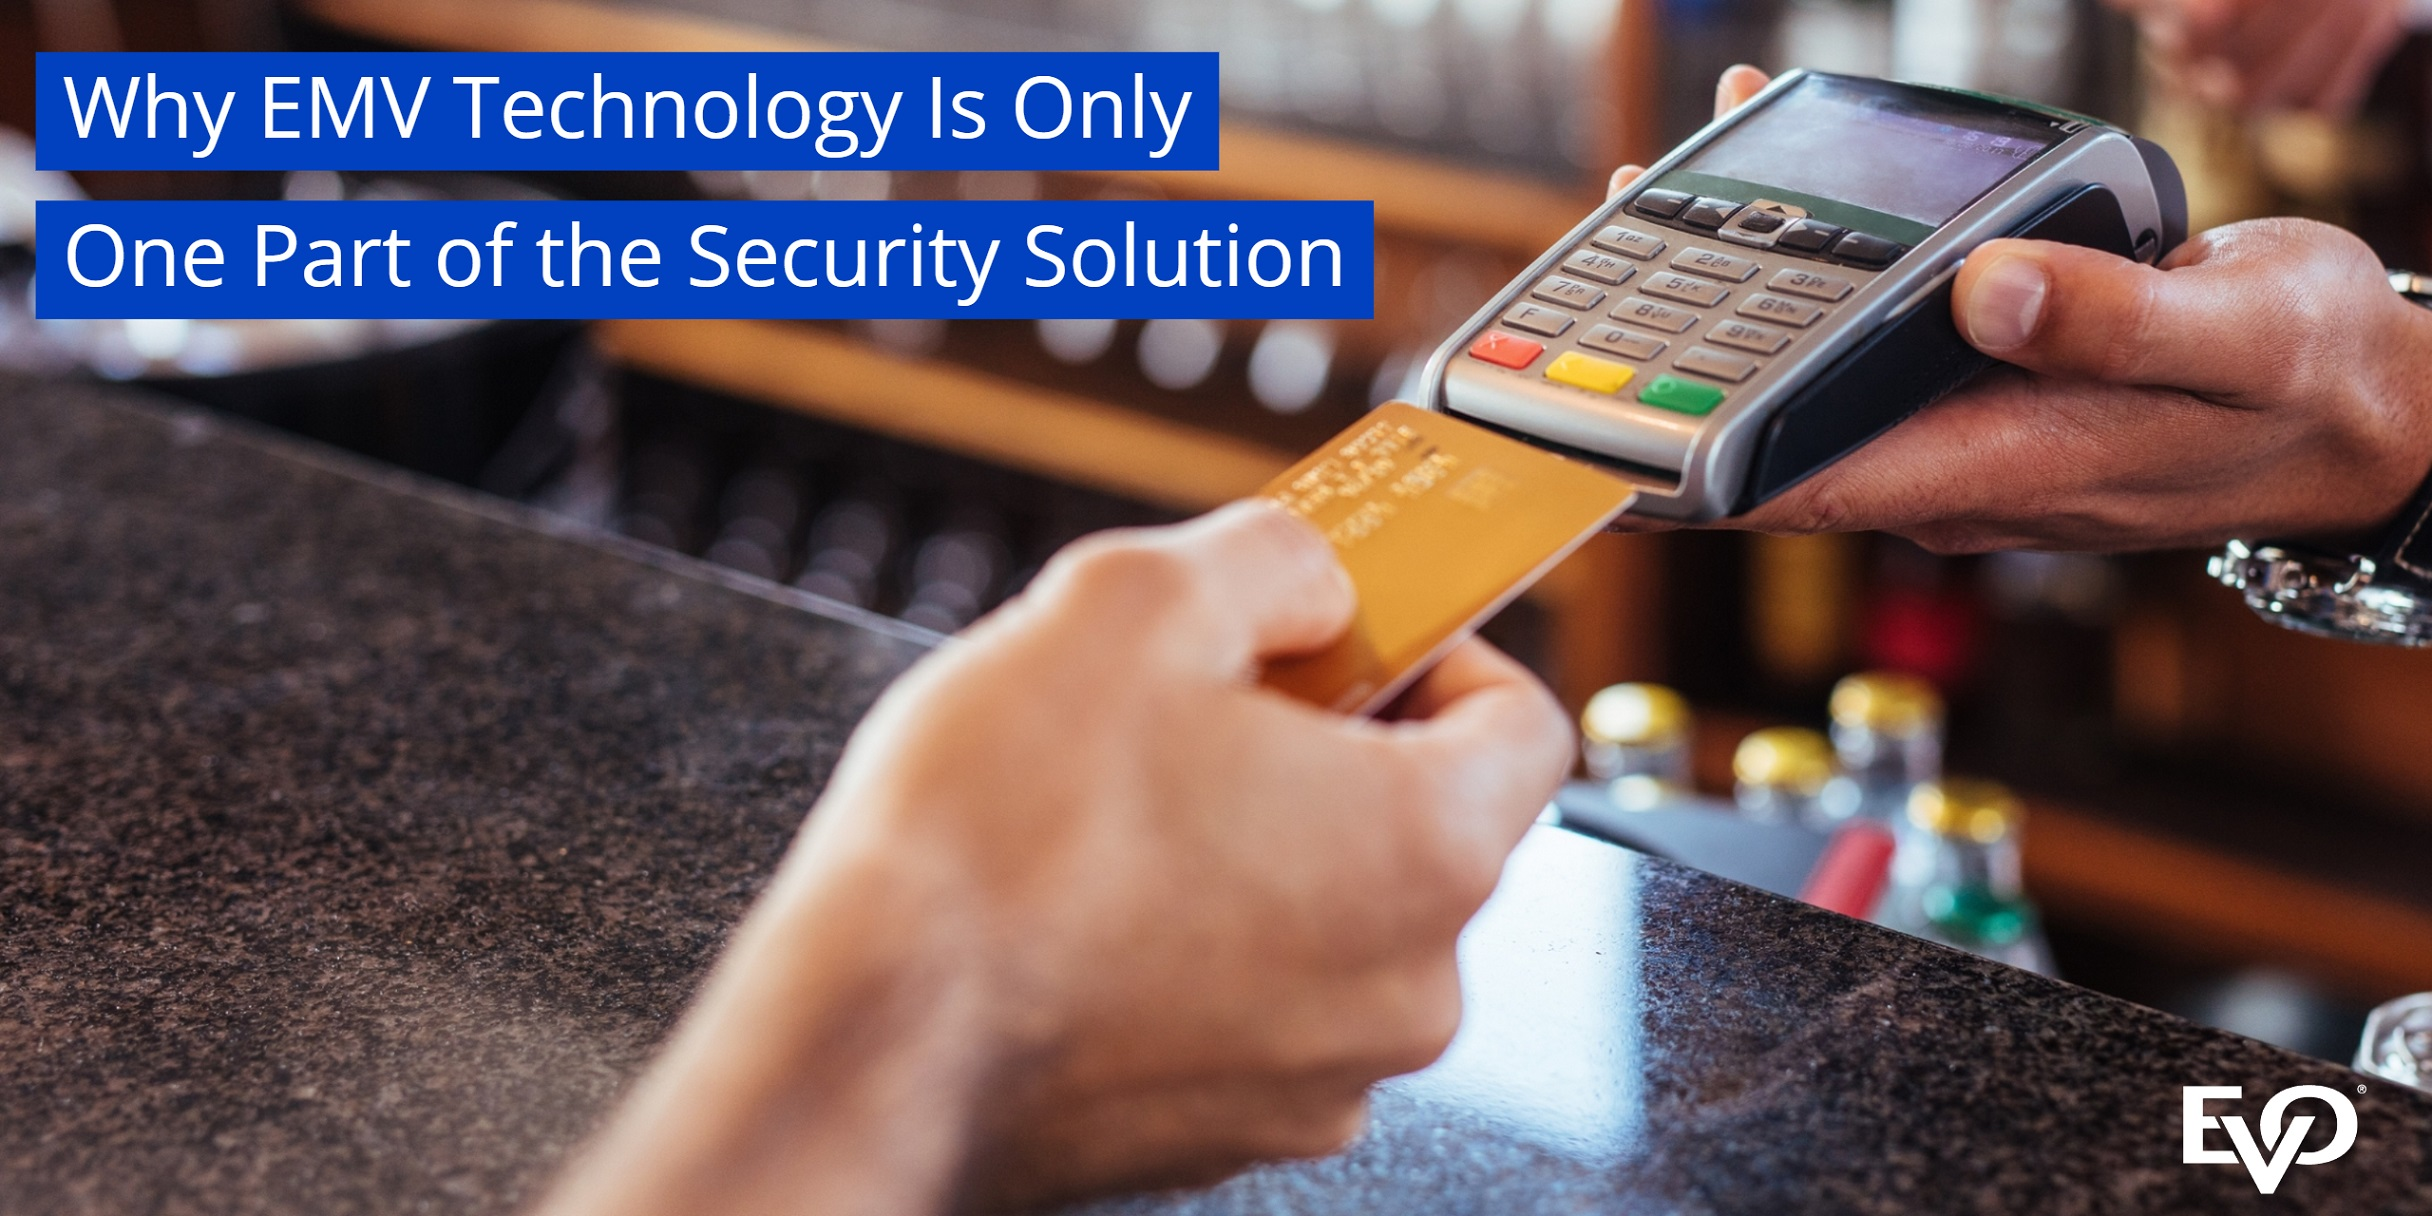 Why EMV technology is only one part of the security solution